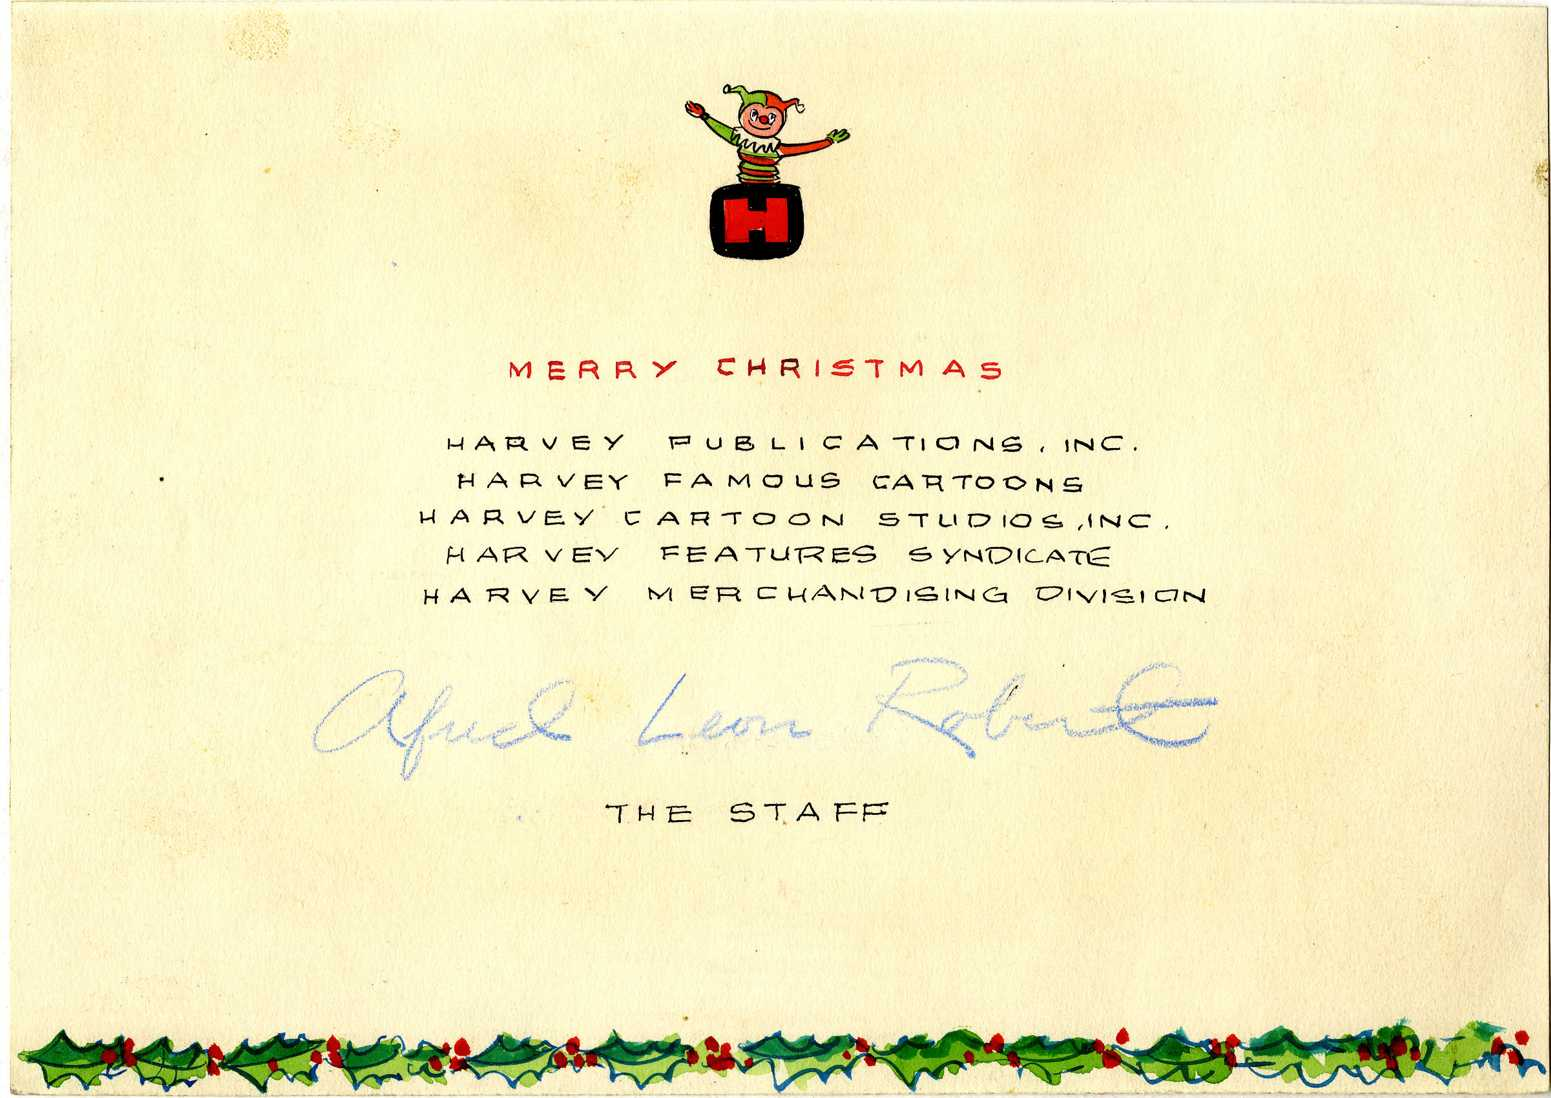 christmas card undated a space for the signatures of brothers alfred leon and robert harvey is indicated see item 6309 to view the artwork for the - Christmas Card Signatures